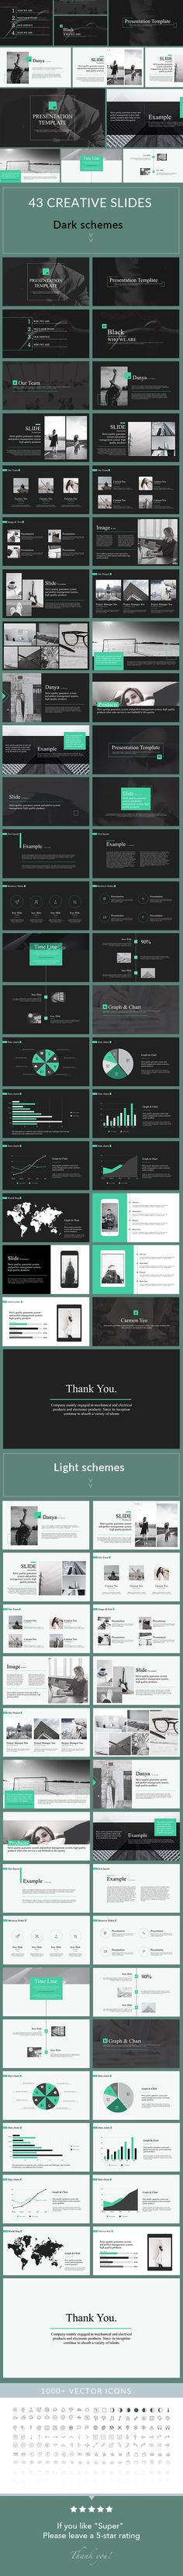 Mark - Clean PowerPoint Presentation Template - Creative PowerPoint Templates